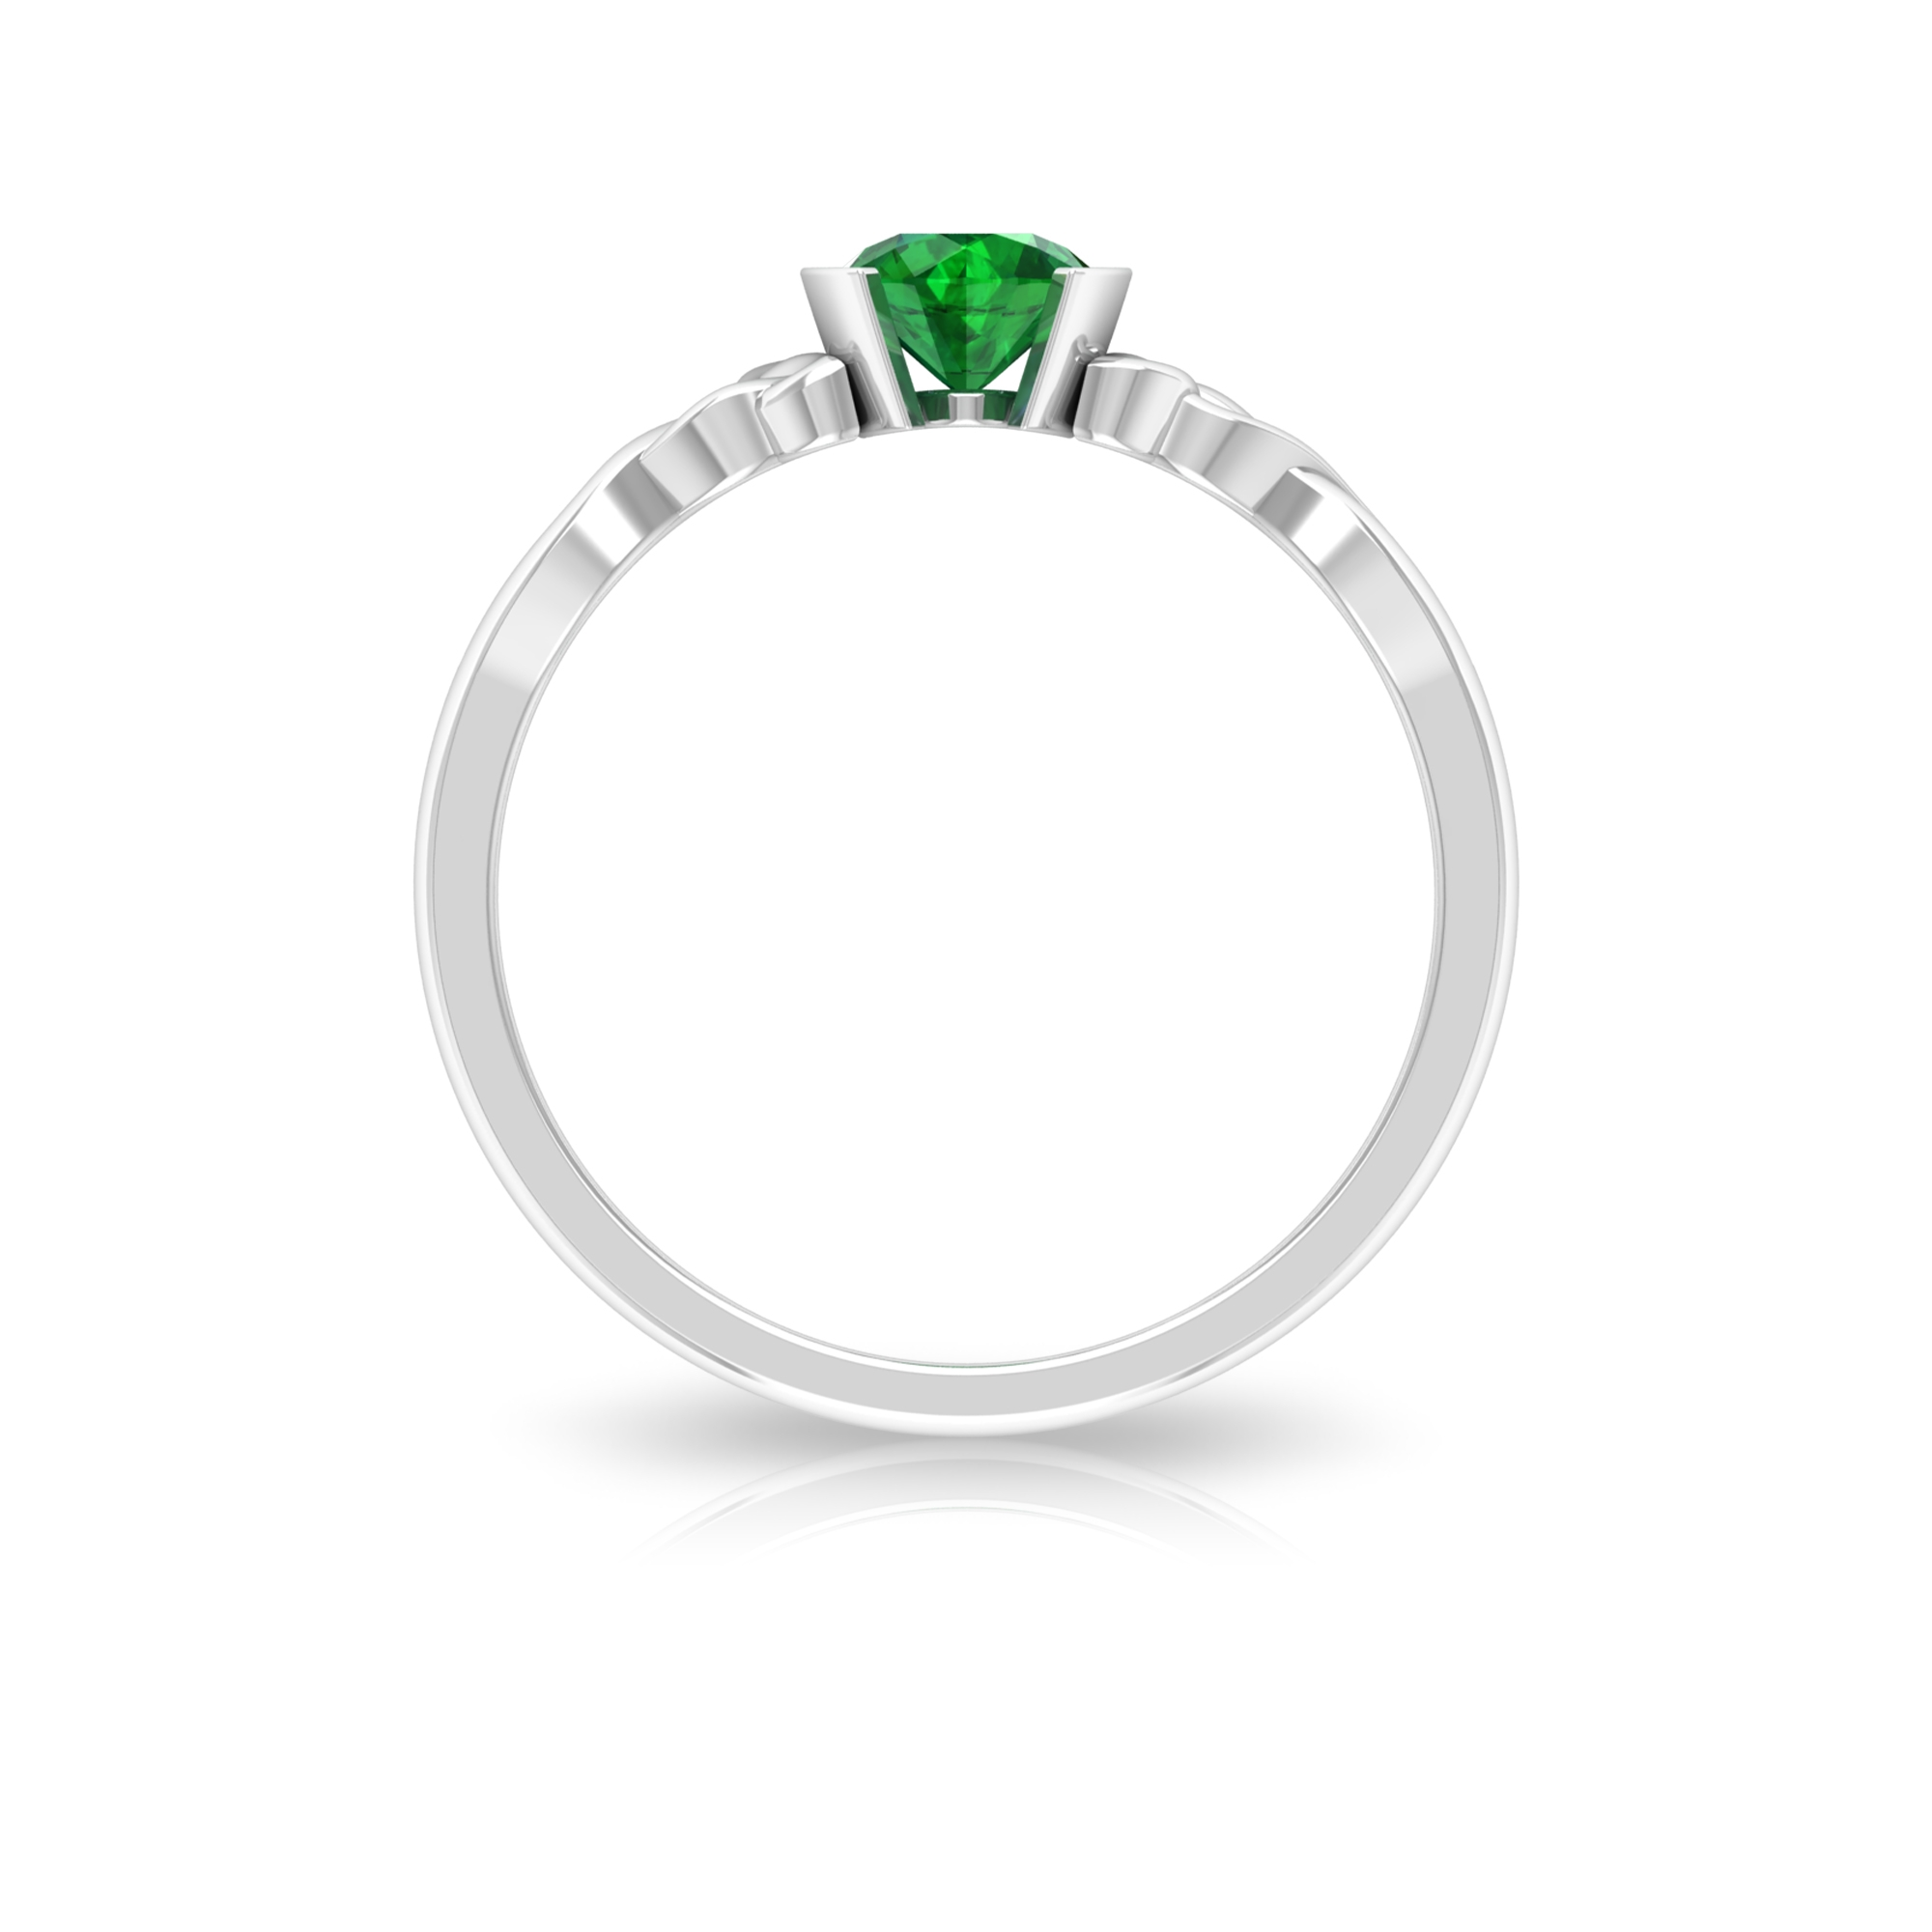 5 MM Round Cut Solitaire Emerald Celtic Ring in Half Bezel Setting